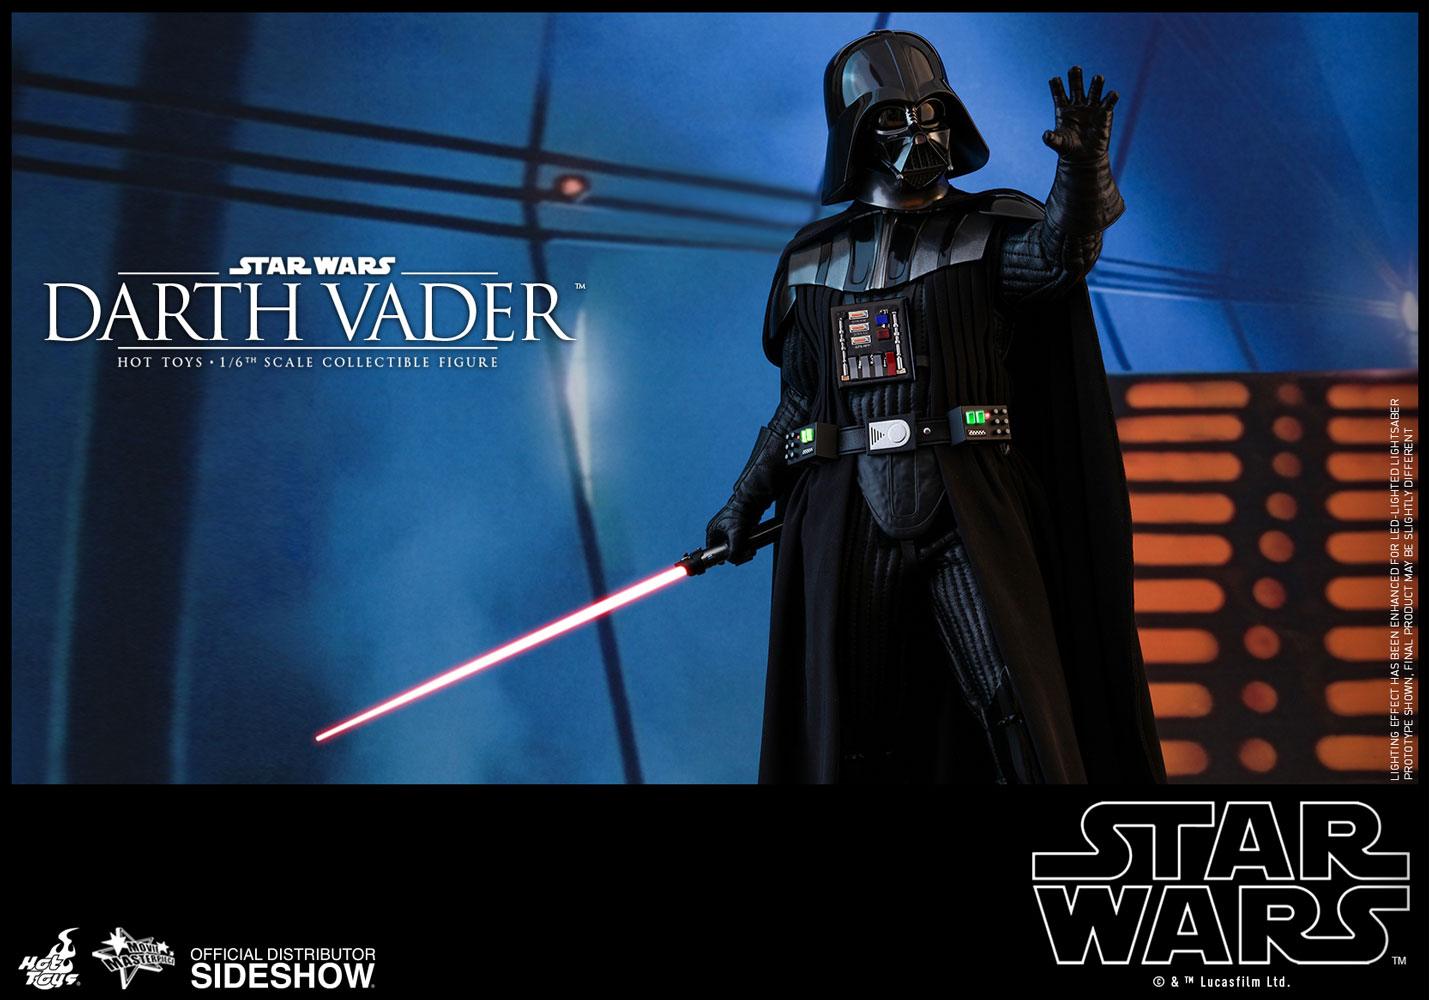 Darth Vader Sixth Scale Figure By Hot Toys Episode V The Empire Strikes Back Movie Masterpiece Series Theforceguide Com